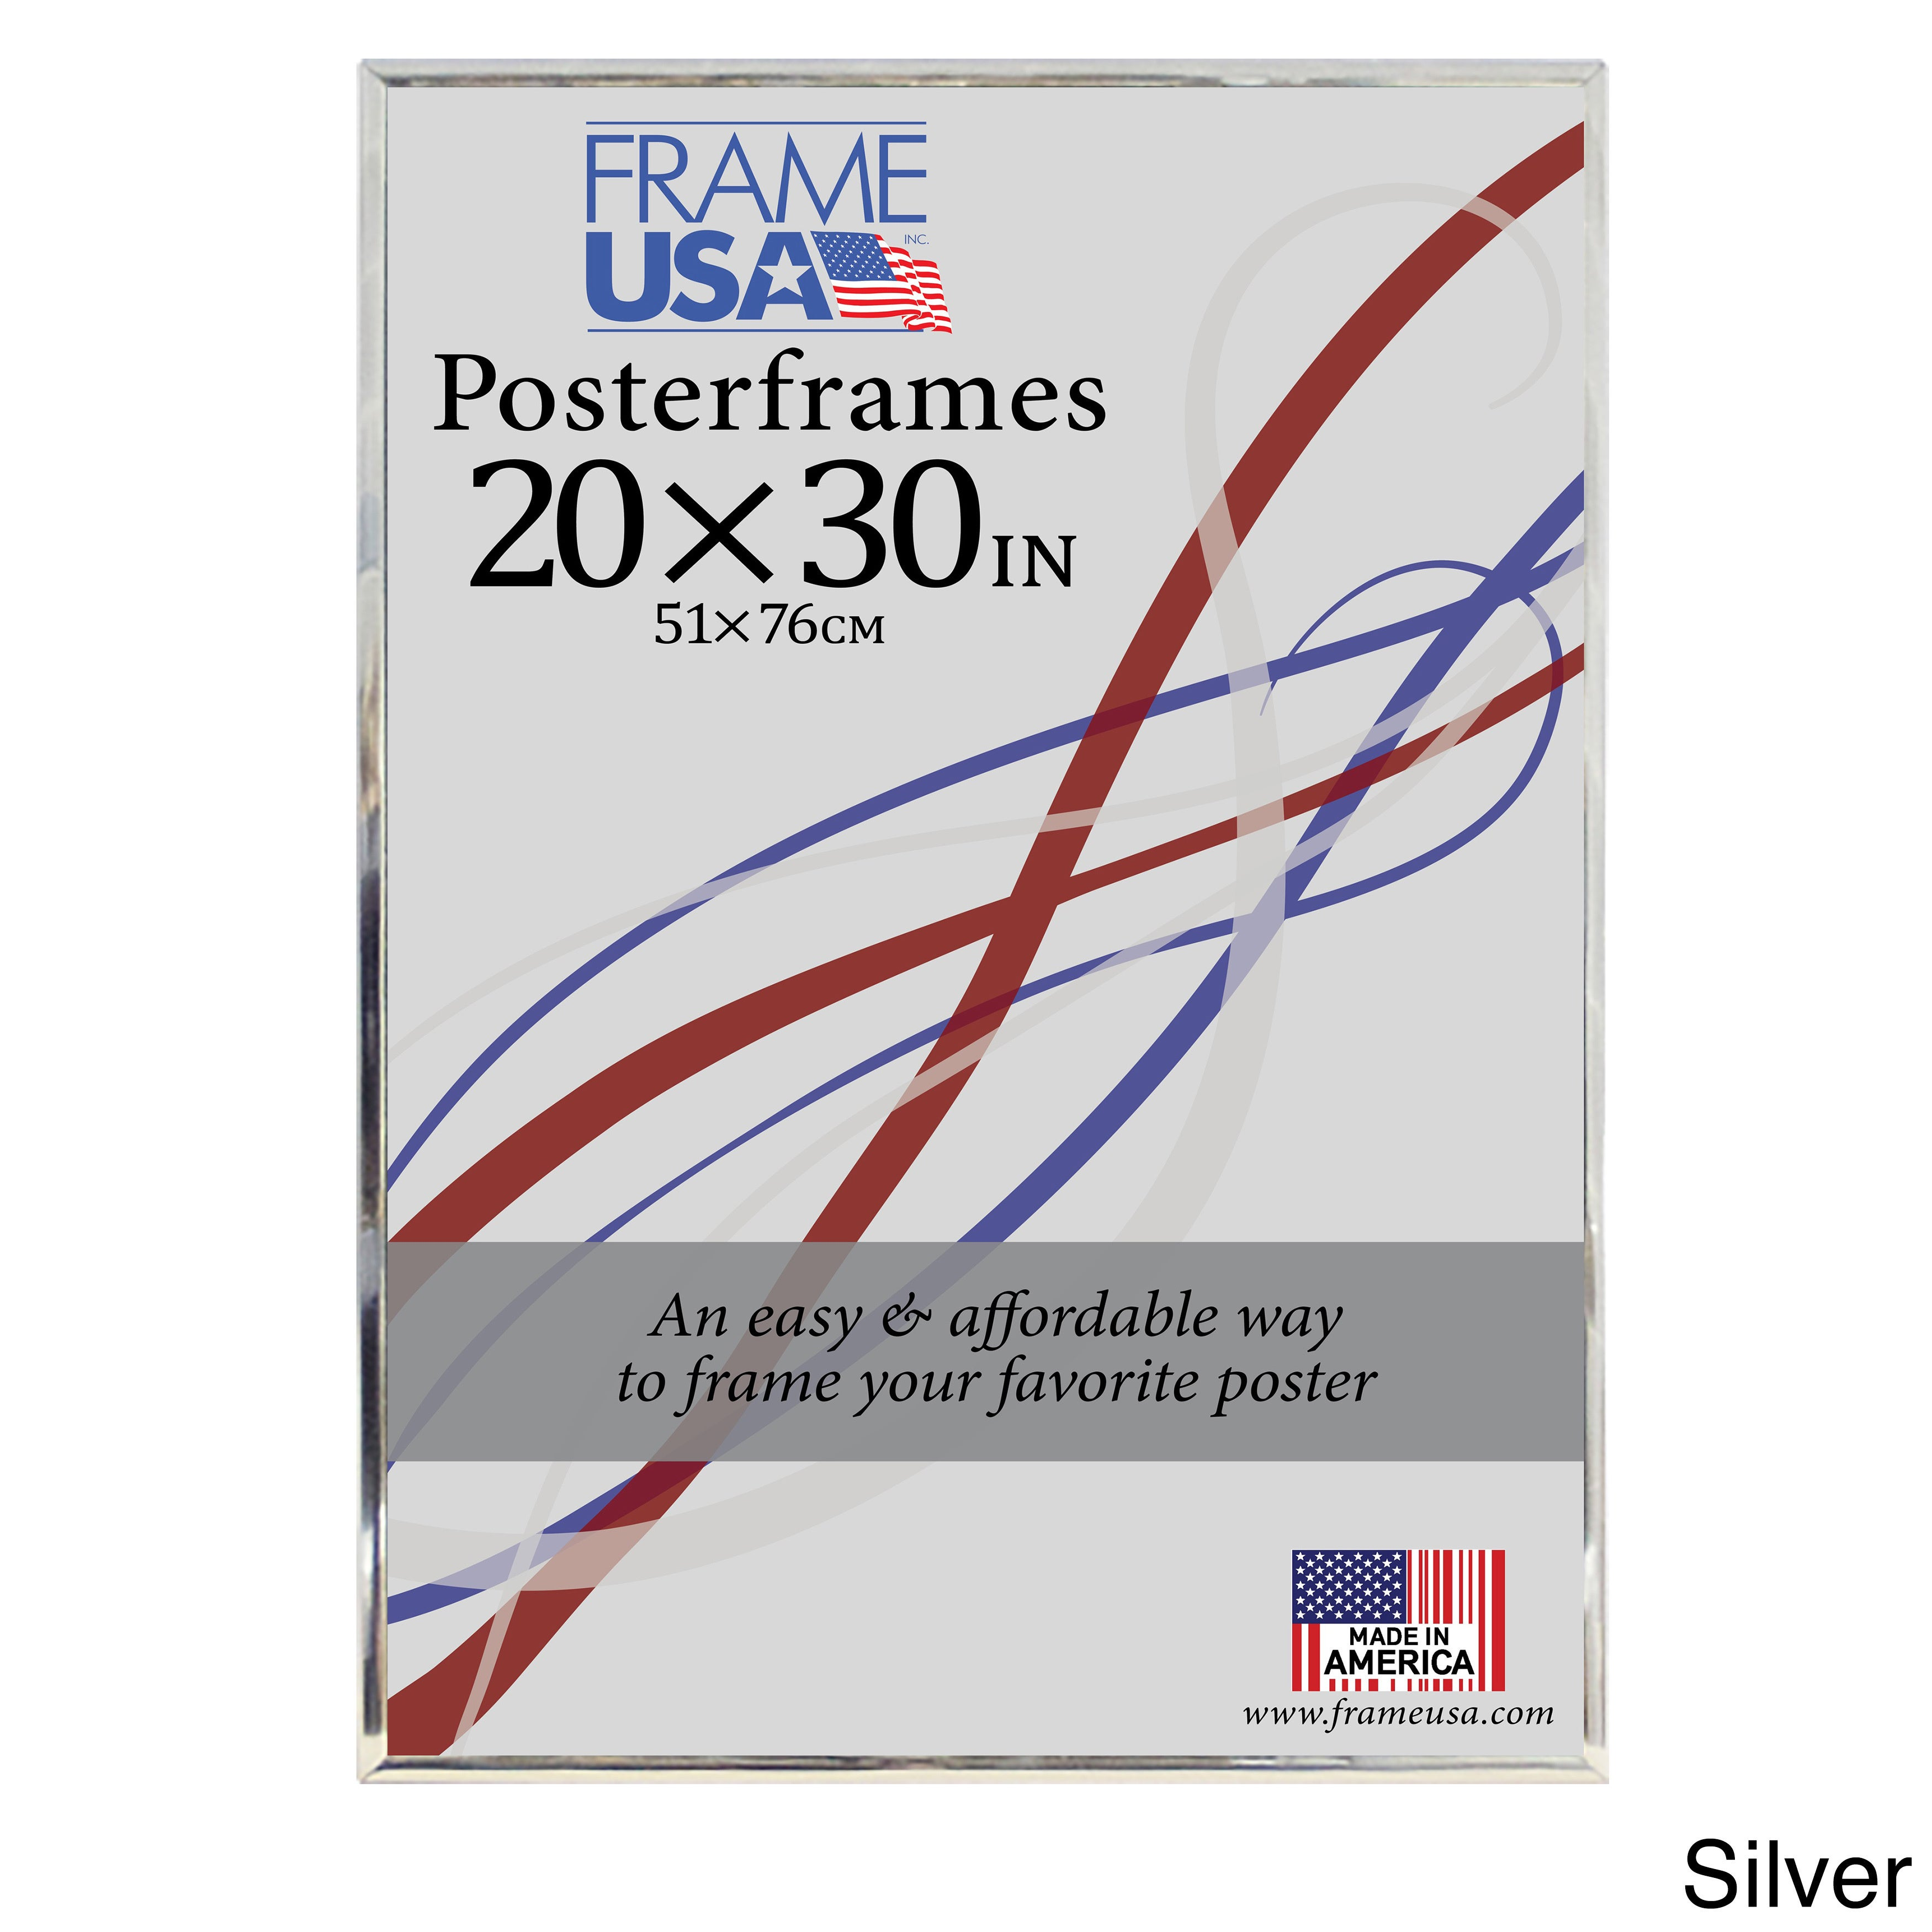 Hardboard poster frame 20 x 30 inch image size silver 20x30 ebay picture 6 of 10 jeuxipadfo Gallery